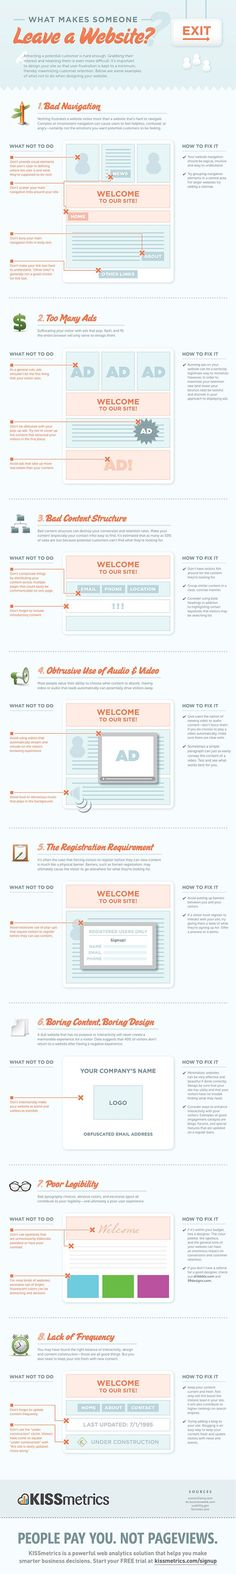 8 Reasons People Leave Your Website Without Buying From You   By www.Riddsnetwork.in